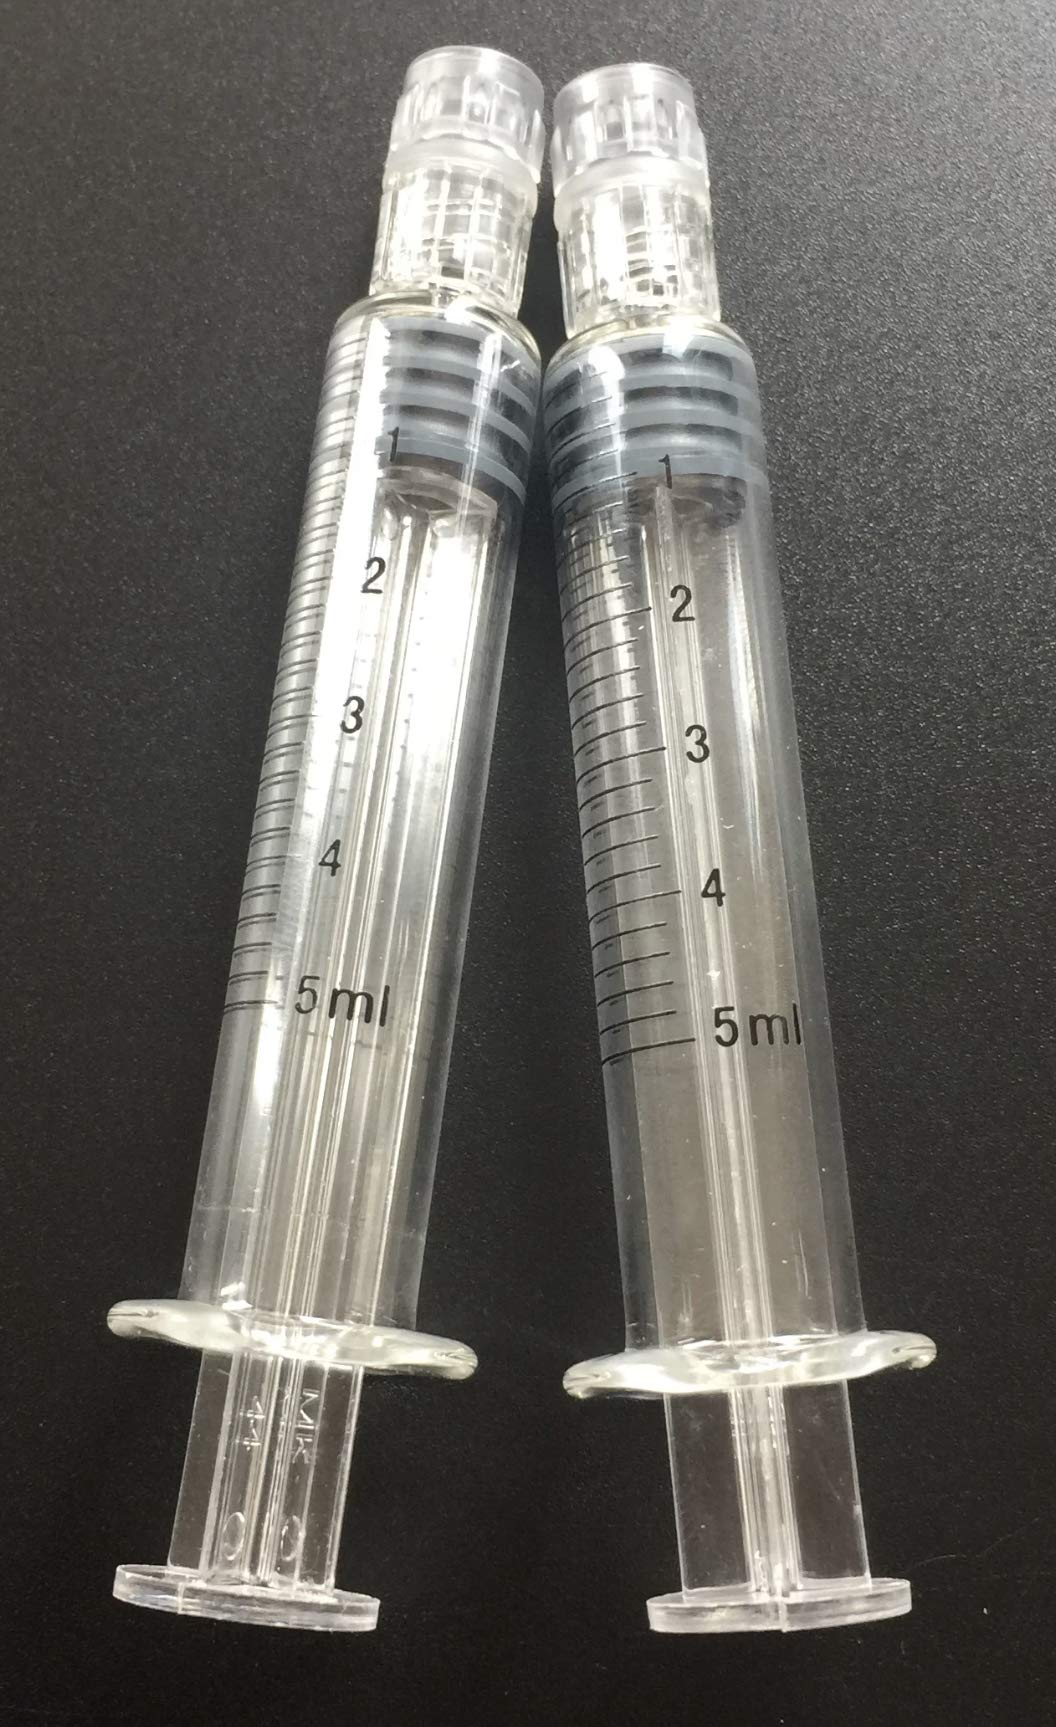 Precision Borosilicate Glass 5ml Luer Lock Syringes (0.2ml Graduations) (5 Pack) (Industrial Measurement only, not for Medical use) by Precision Glassware